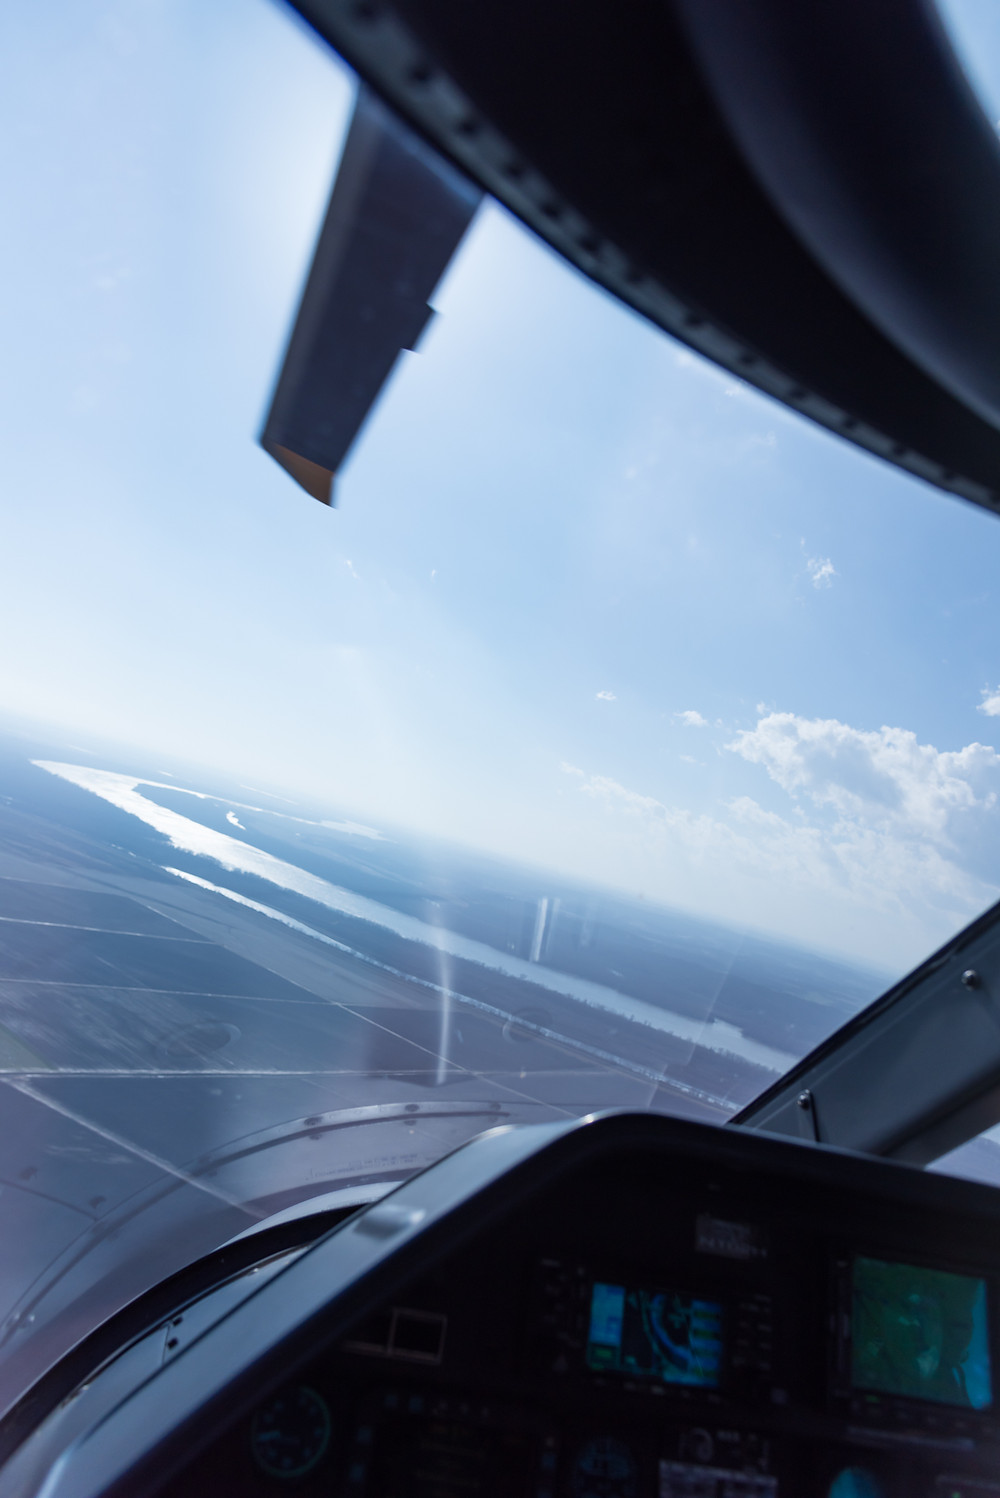 The Mississippi River from the cockpit of the Agusta A109E helicopter